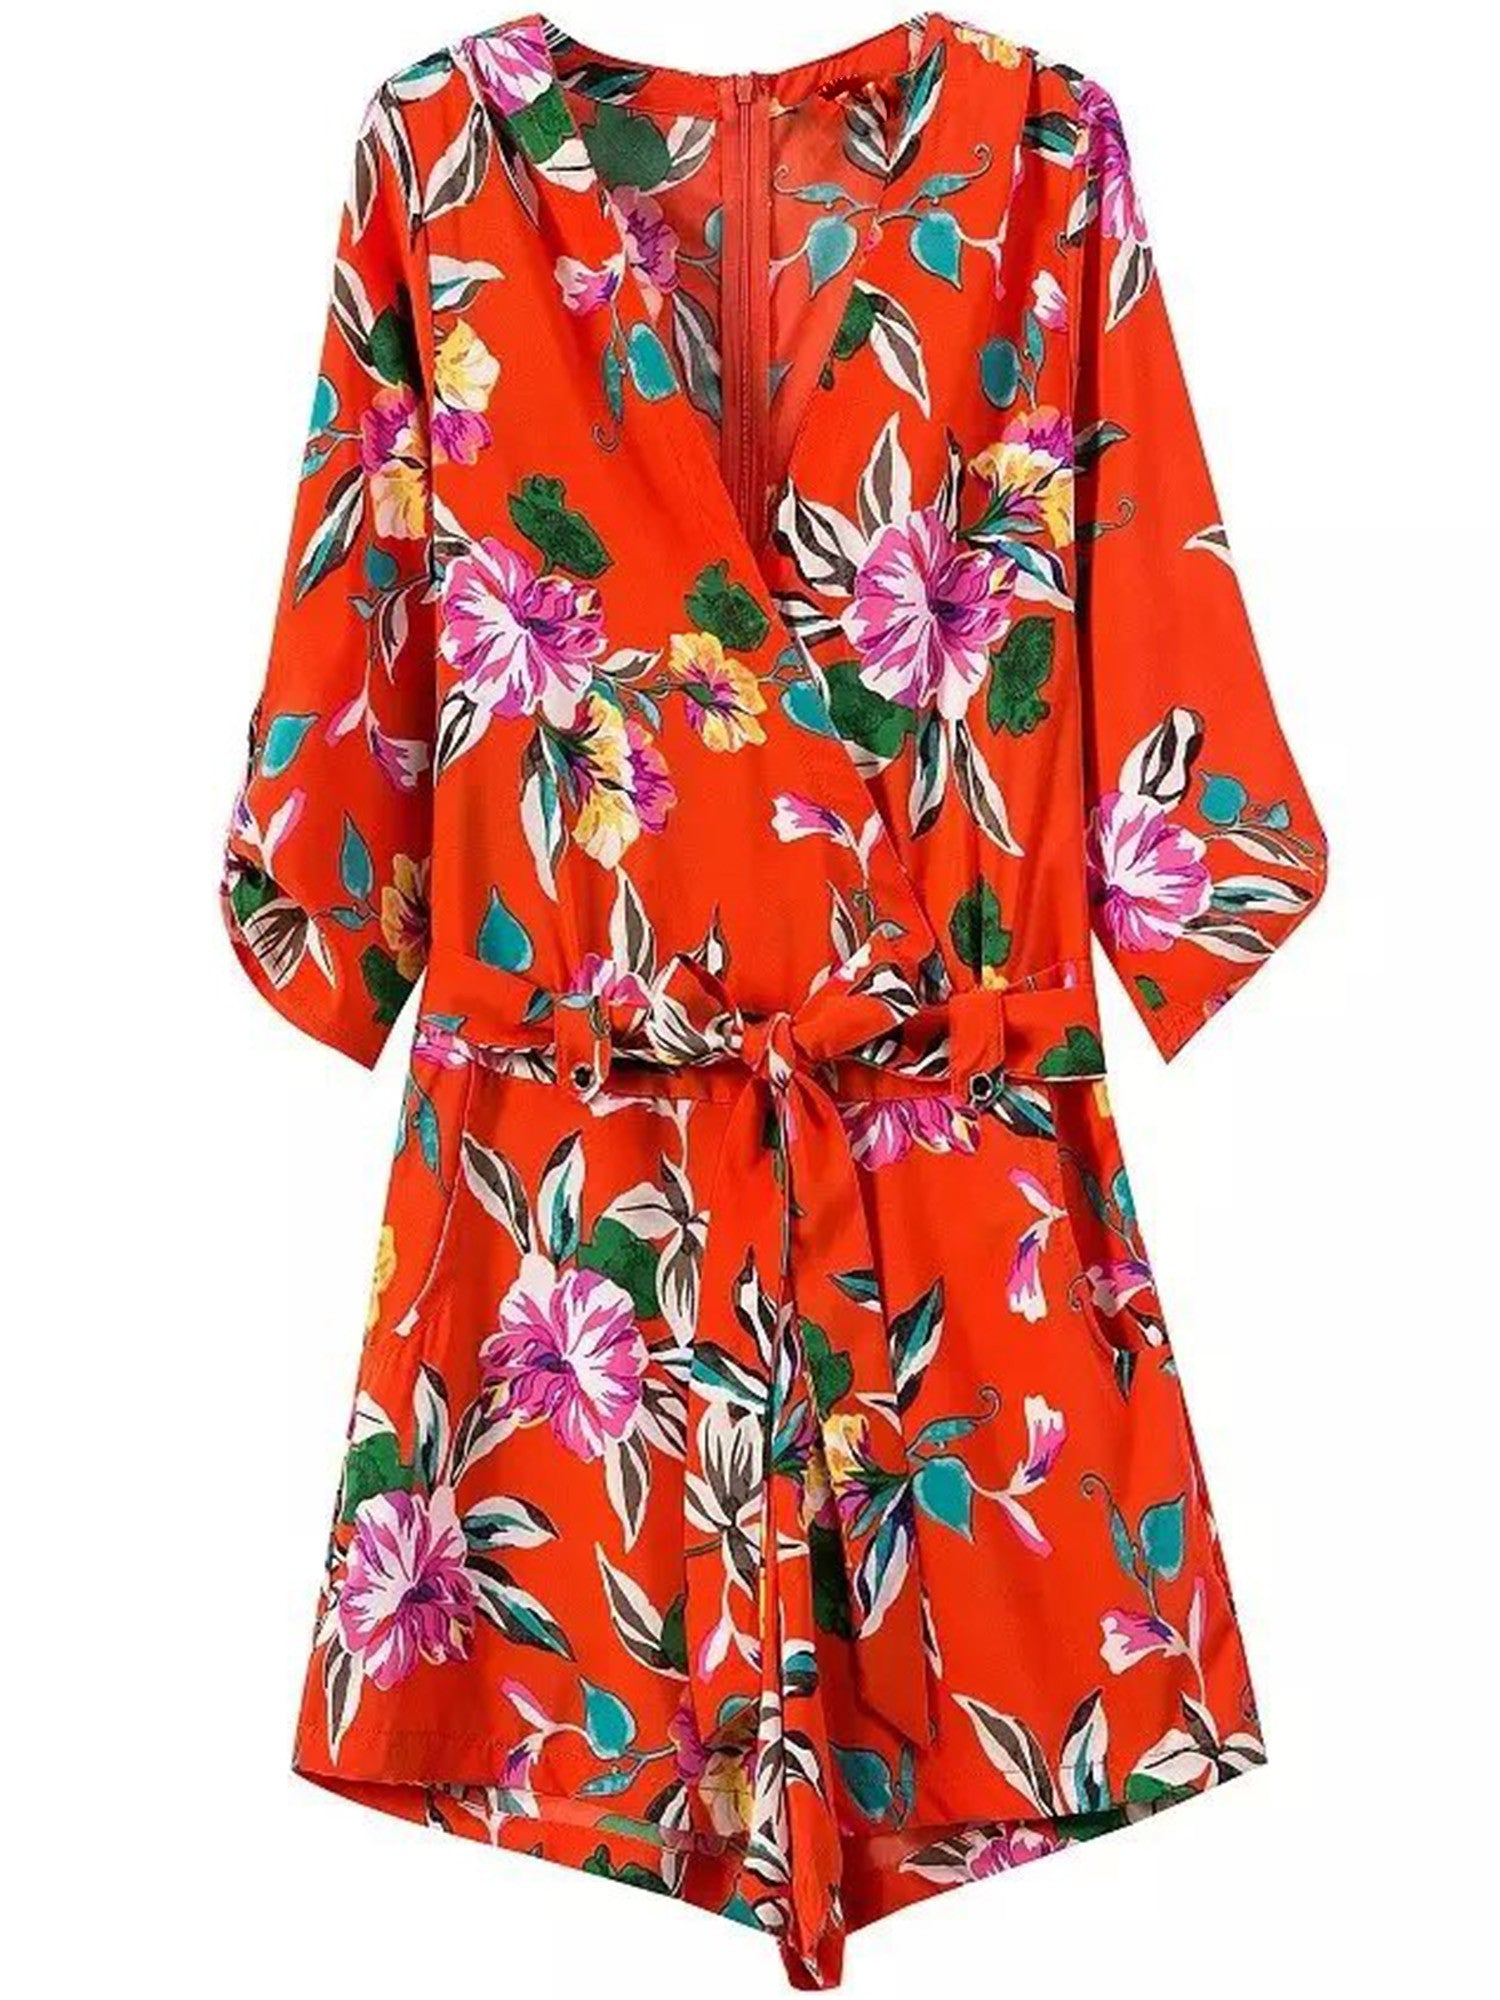 'Westley' Red Floral V-neck Romper